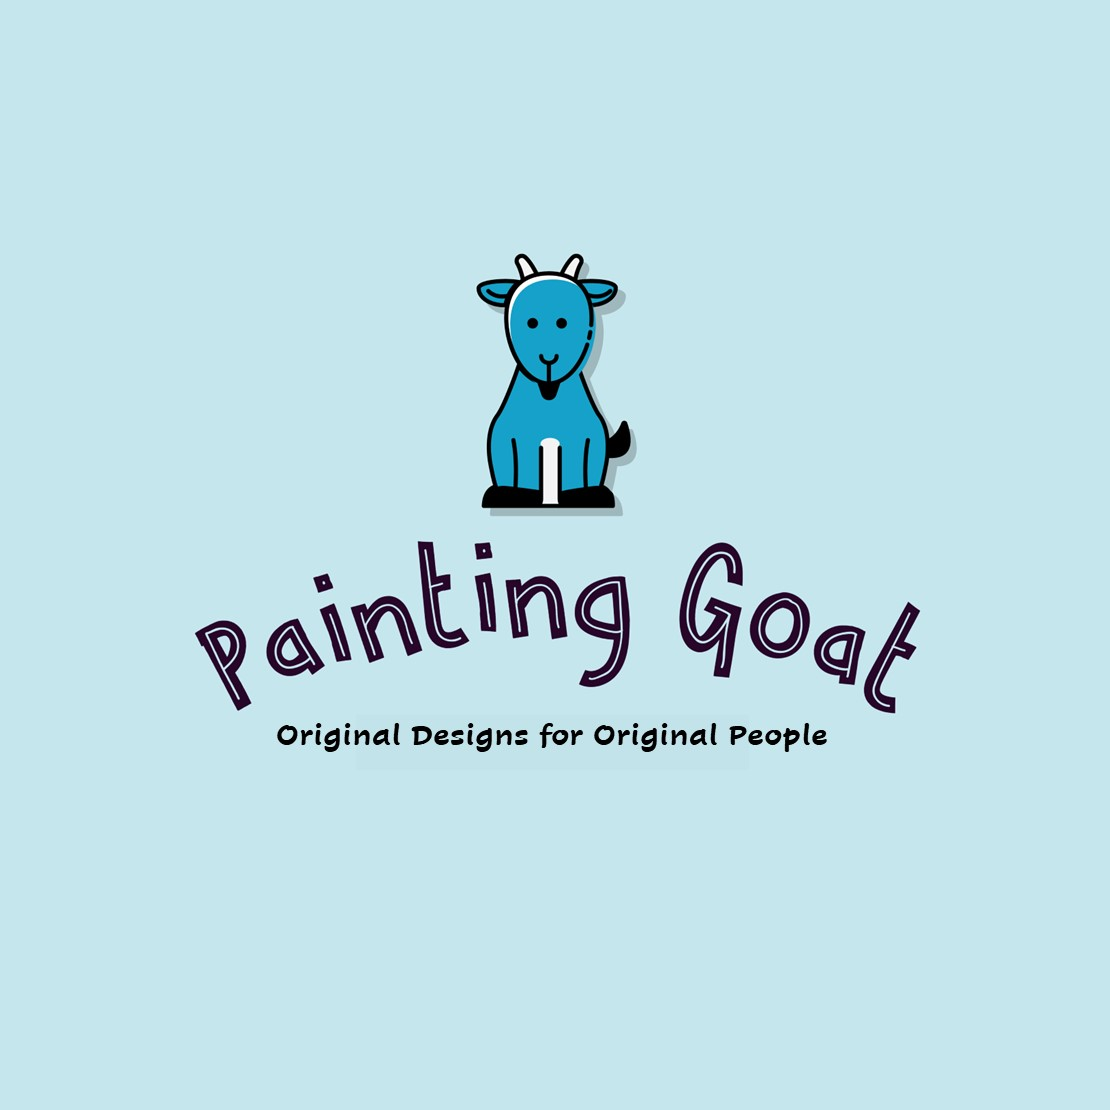 Painting Goat